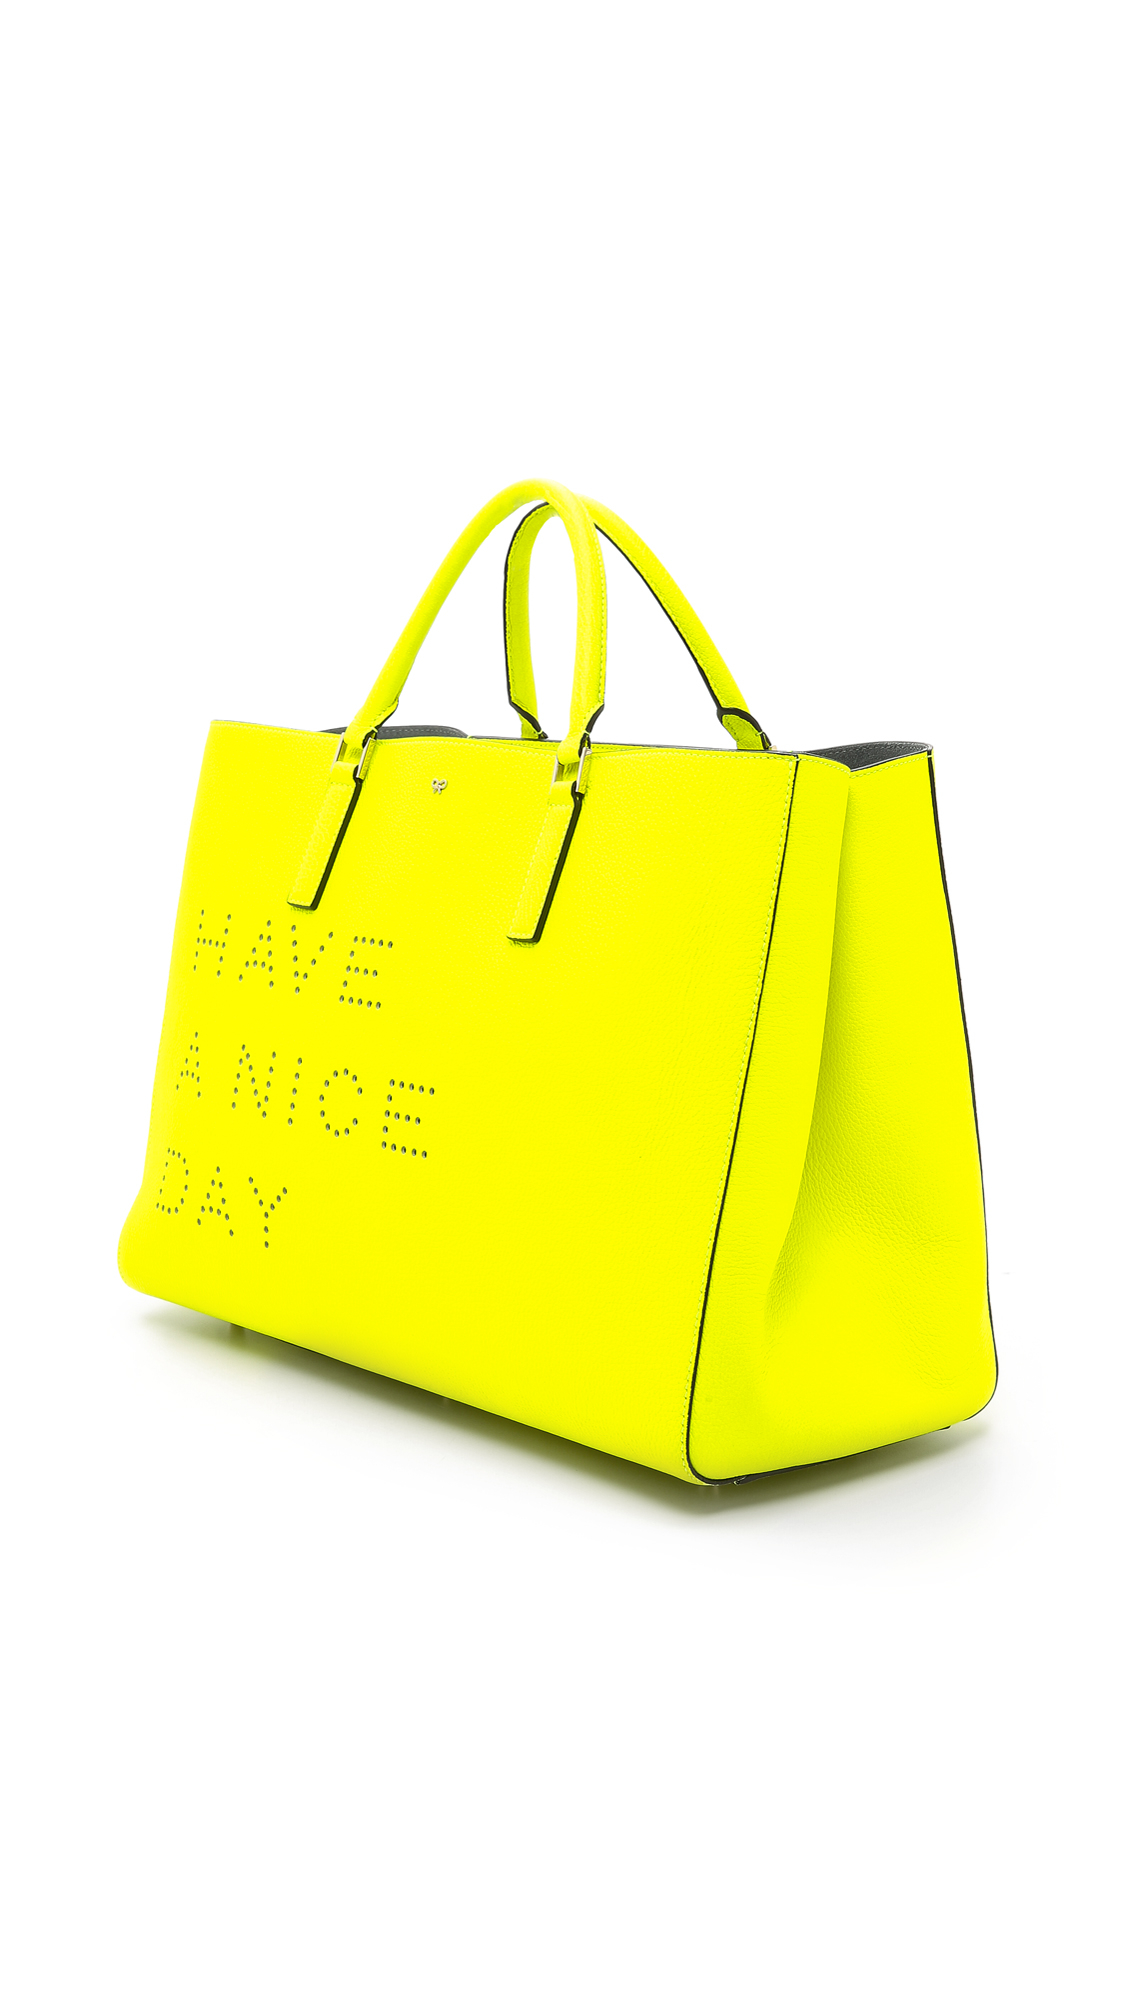 Lyst Anya Hindmarch Have A Nice Day Ebury Maxi Tote